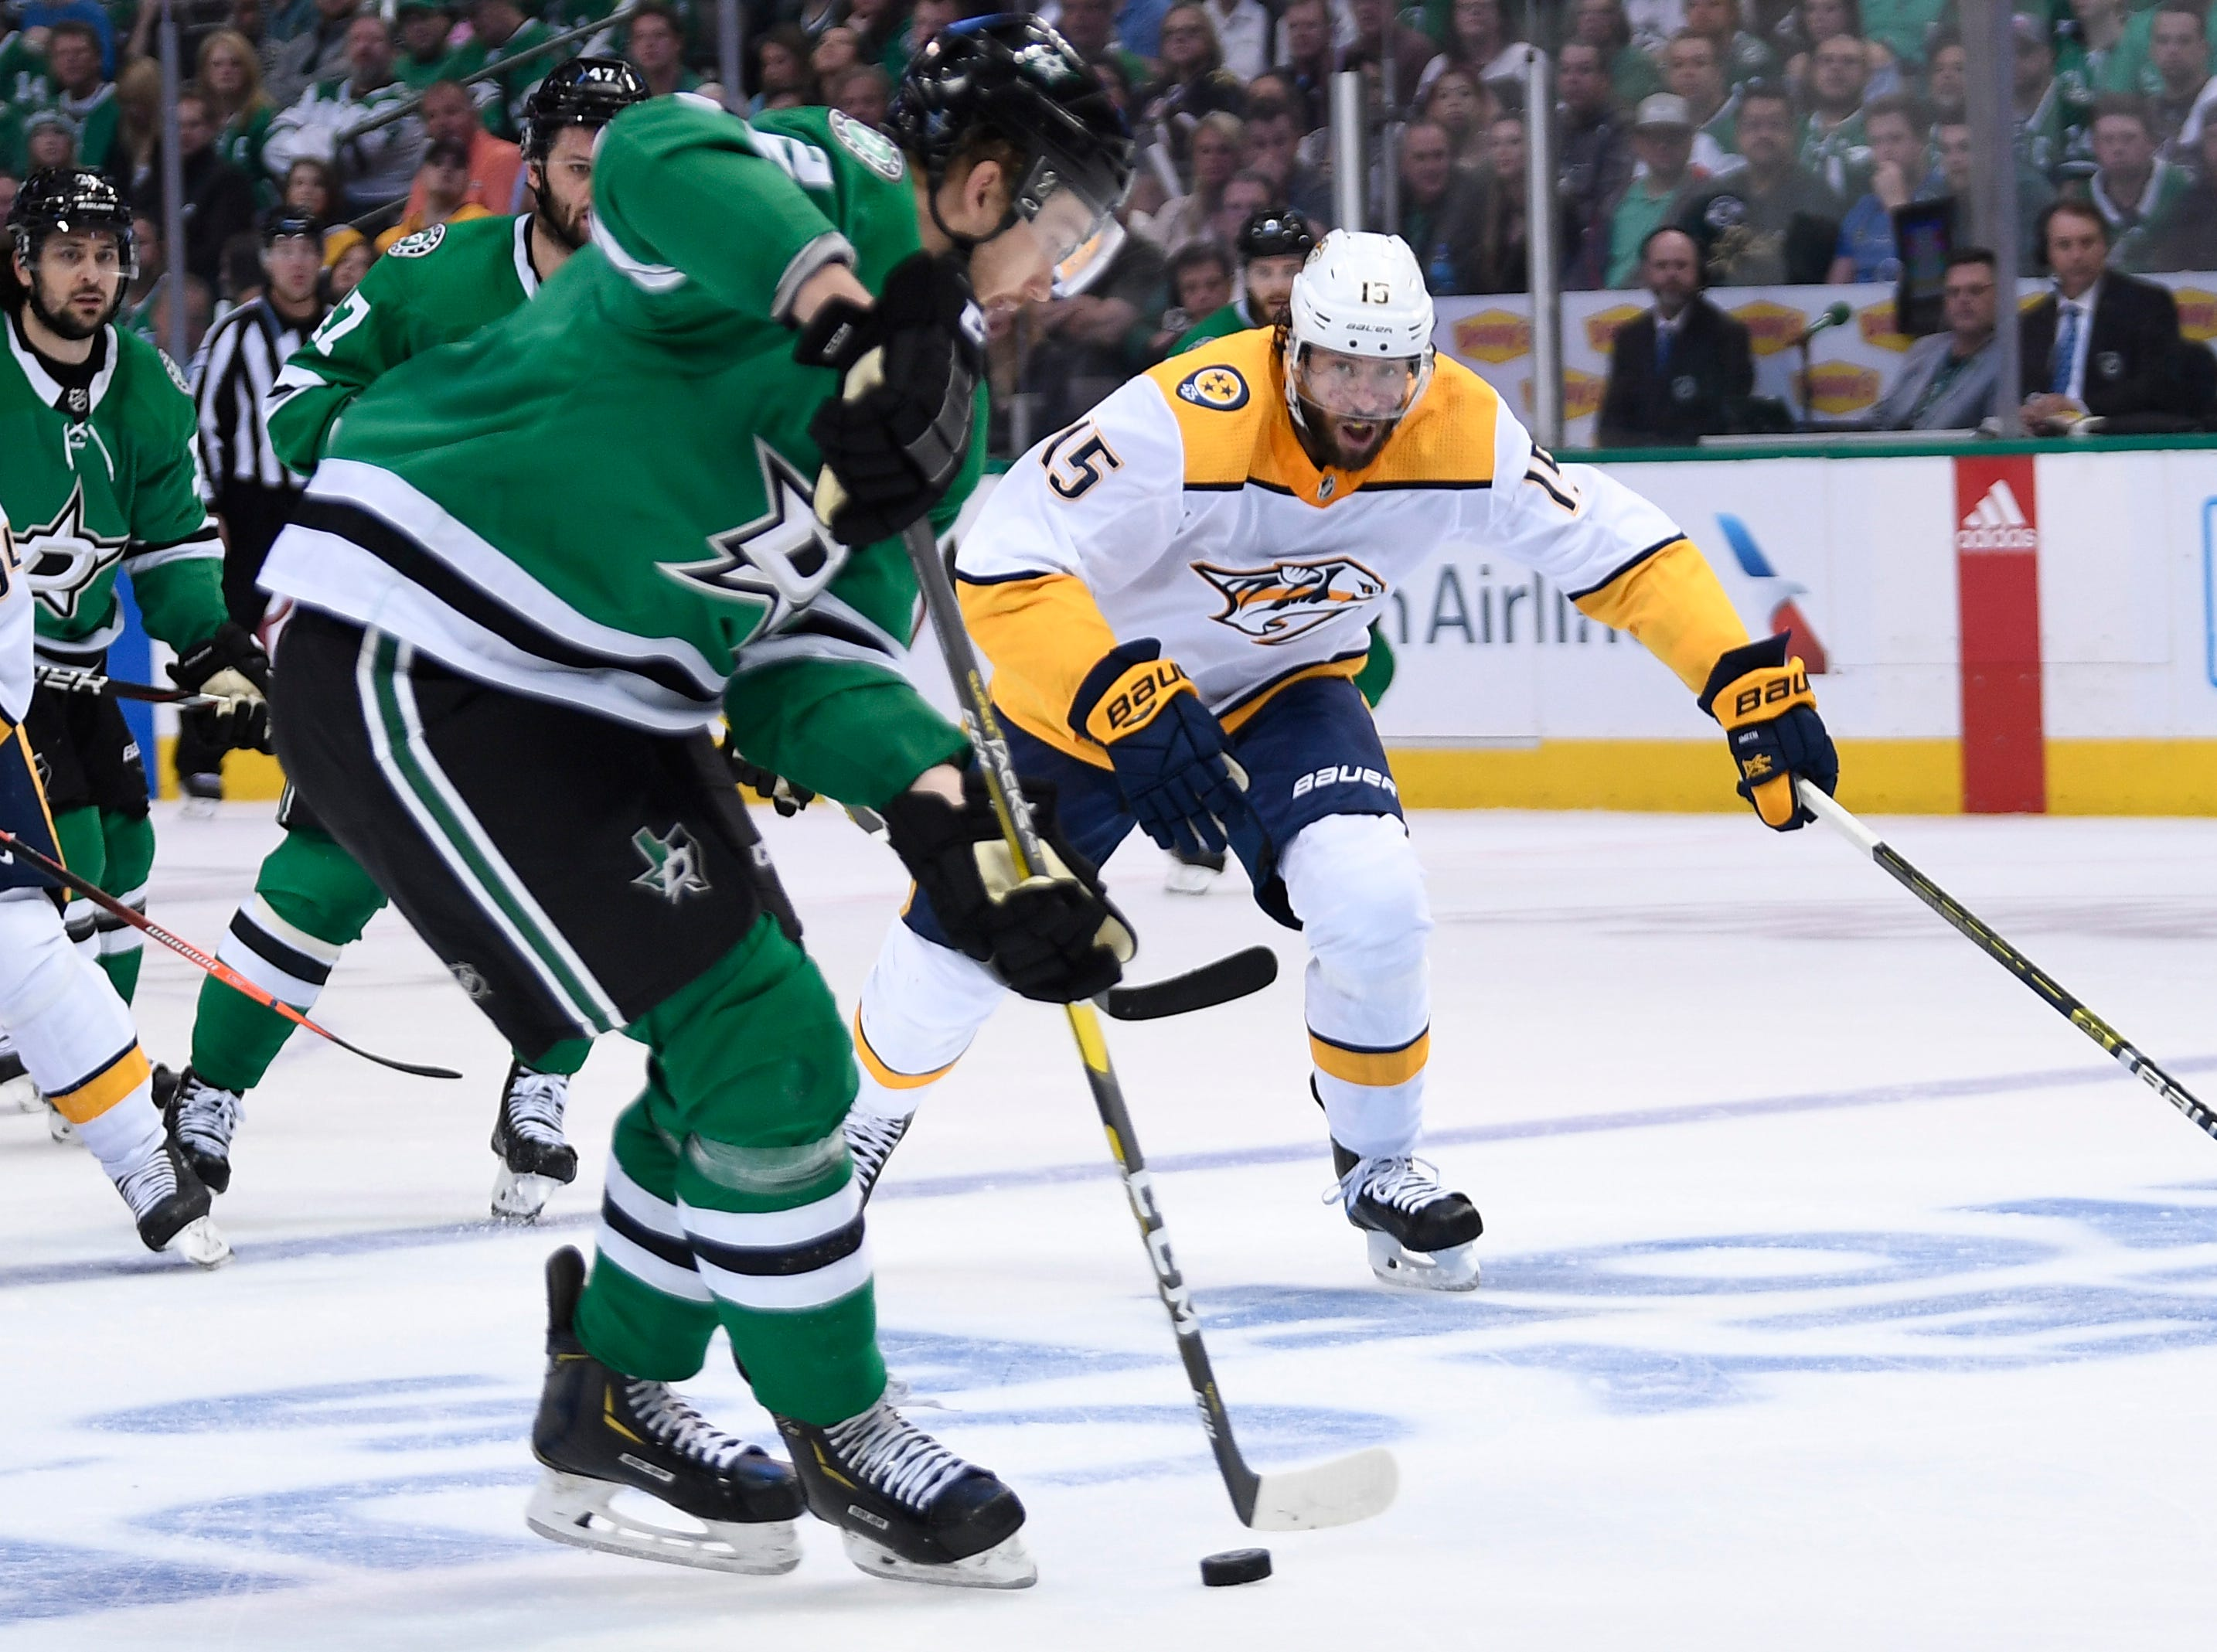 Nashville Predators right wing Craig Smith (15) chases after Dallas Stars defenseman Jamie Oleksiak (2) during the second period of the divisional semifinal game at the American Airlines Center in Dallas, Texas., Monday, April 15, 2019.